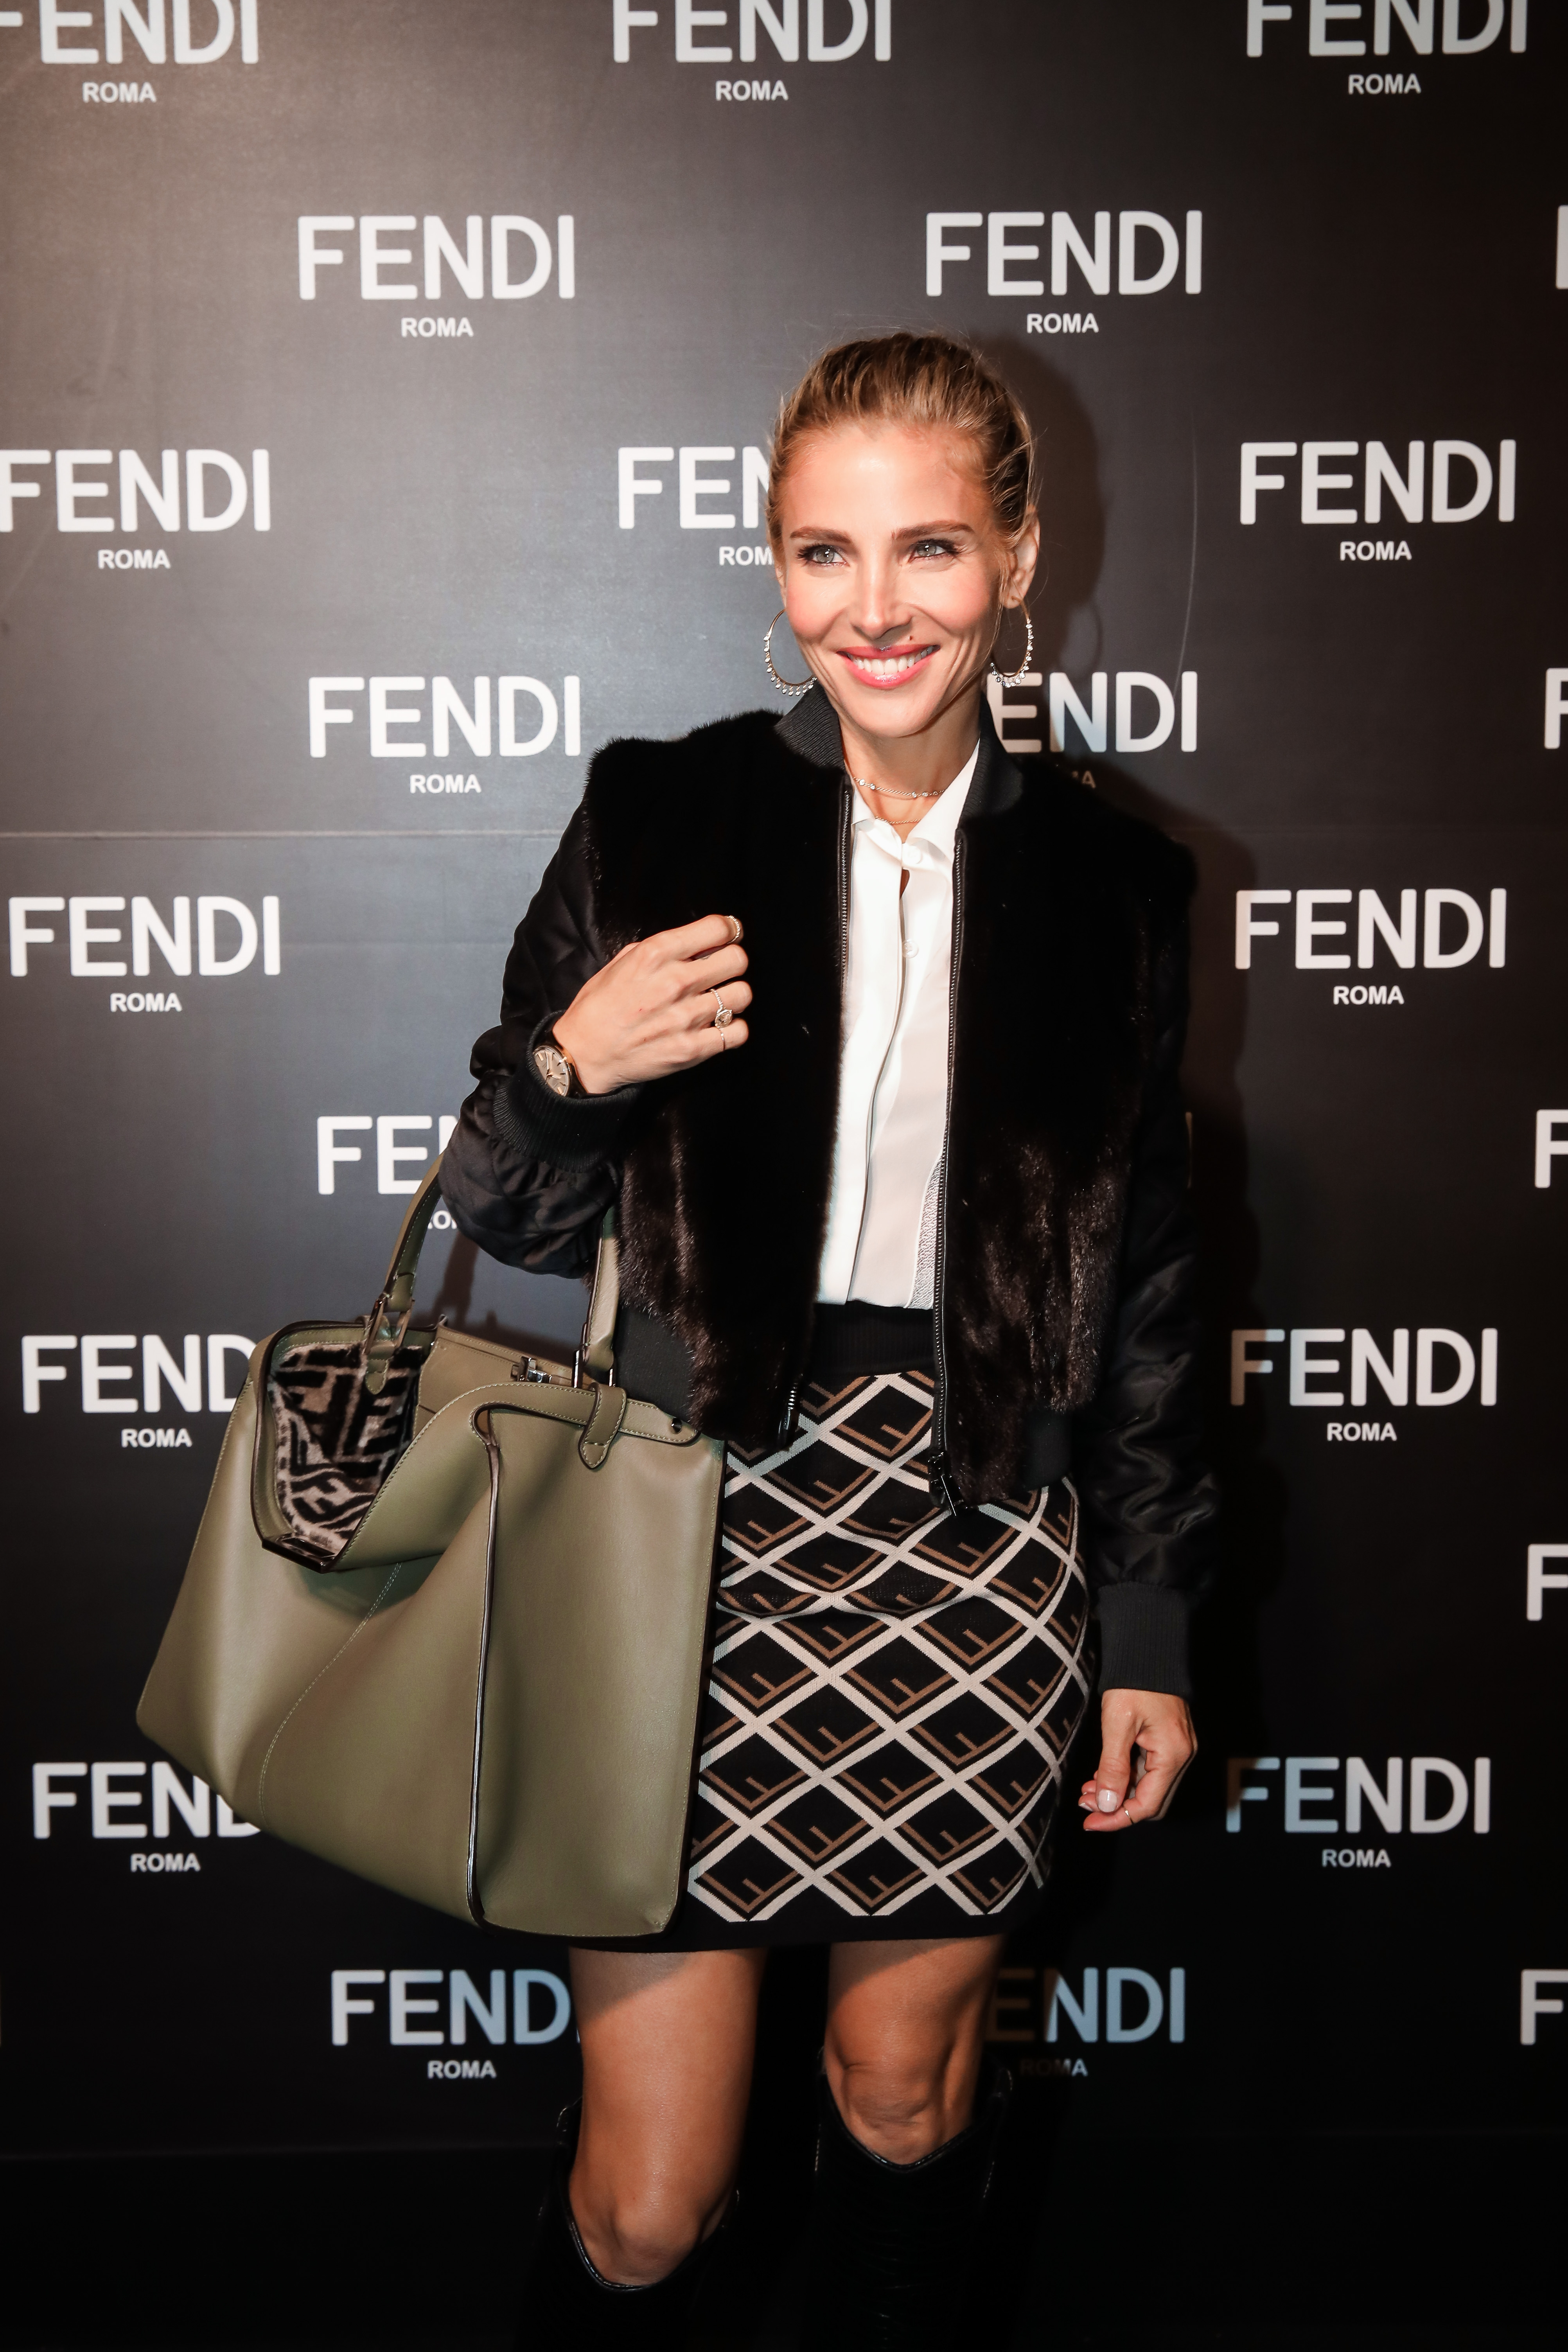 """<a href=""""https://style.nine.com.au/2018/05/02/11/22/elsa-pataky-style/18"""" target=""""_blank"""" title=""""Elsa Pataky stole the show """" draggable=""""false"""">Elsa Pataky stole the show </a>on a black carpet for the opening of Fendi's first Australian flagship boutique in Melbourne, joining the likes of David Jones ambassador Jessica Gomes, male model Jordan Barrett and <a href=""""http://https://style.nine.com.au/2018/02/28/21/50/nadia-fairfax-upside-activewear-blogger"""" target=""""_blank"""" title=""""styleblogger Nadia Fairfax."""" draggable=""""false"""">style blogger Nadia Fairfax.</a><br /> <br /> In head-to-toe attire from the luxury Italian fashion house's A/W'18 collection, the Spanish actress and wife of Chris Hemsworth looked relaxed as she mingled with Australia's fashion elite at the Collins Street-based boutique.<br /> <br /> The appearance of Pataky at the opening is a testament to just how much the mother-of-three has been embraced by her husband's homeland. Earlier this year, she attended her first Aussie fashion week in Sydney as a guest of <em>Vogue</em> and is set to star in Netflix's first-ever original Australian production, Tidelands, earlier this year.<br /> <br /> For fashion aficionados with deep pockets, the new Fendi boutique offers both the women's andmen's ready-to-wear lines, accessories and leather goods.<br /> <br /> Click through to see more of Elsa Pataky and the style highlights from the launch of Australia's first-ever Fendi flagship boutique."""